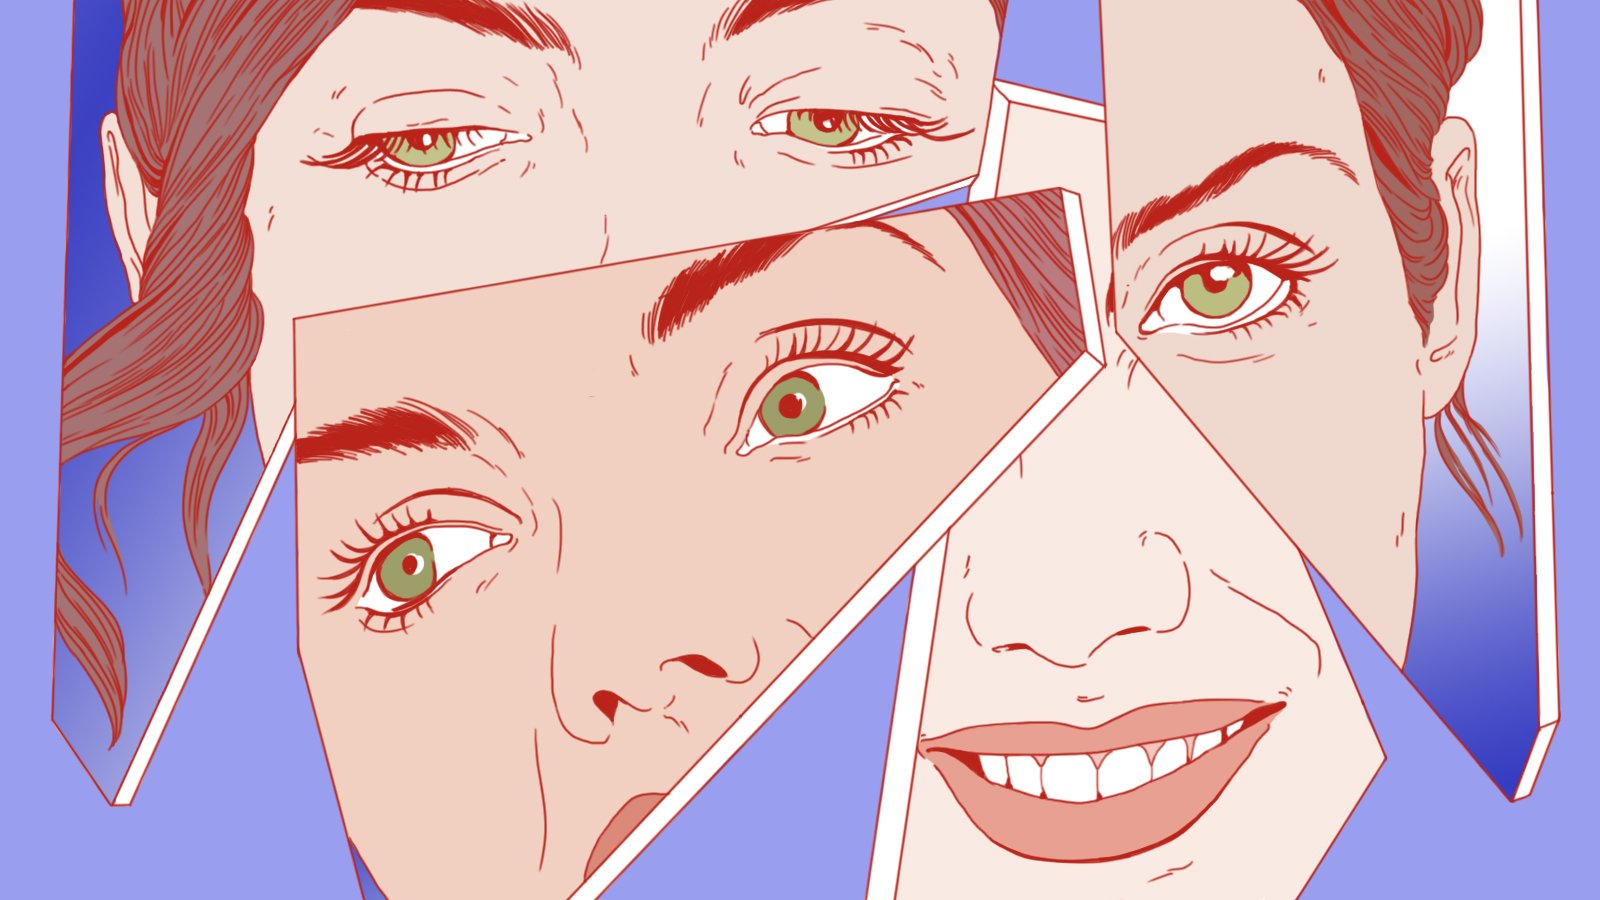 an illustration of the same woman with different expressions reflected in broken mirror shards